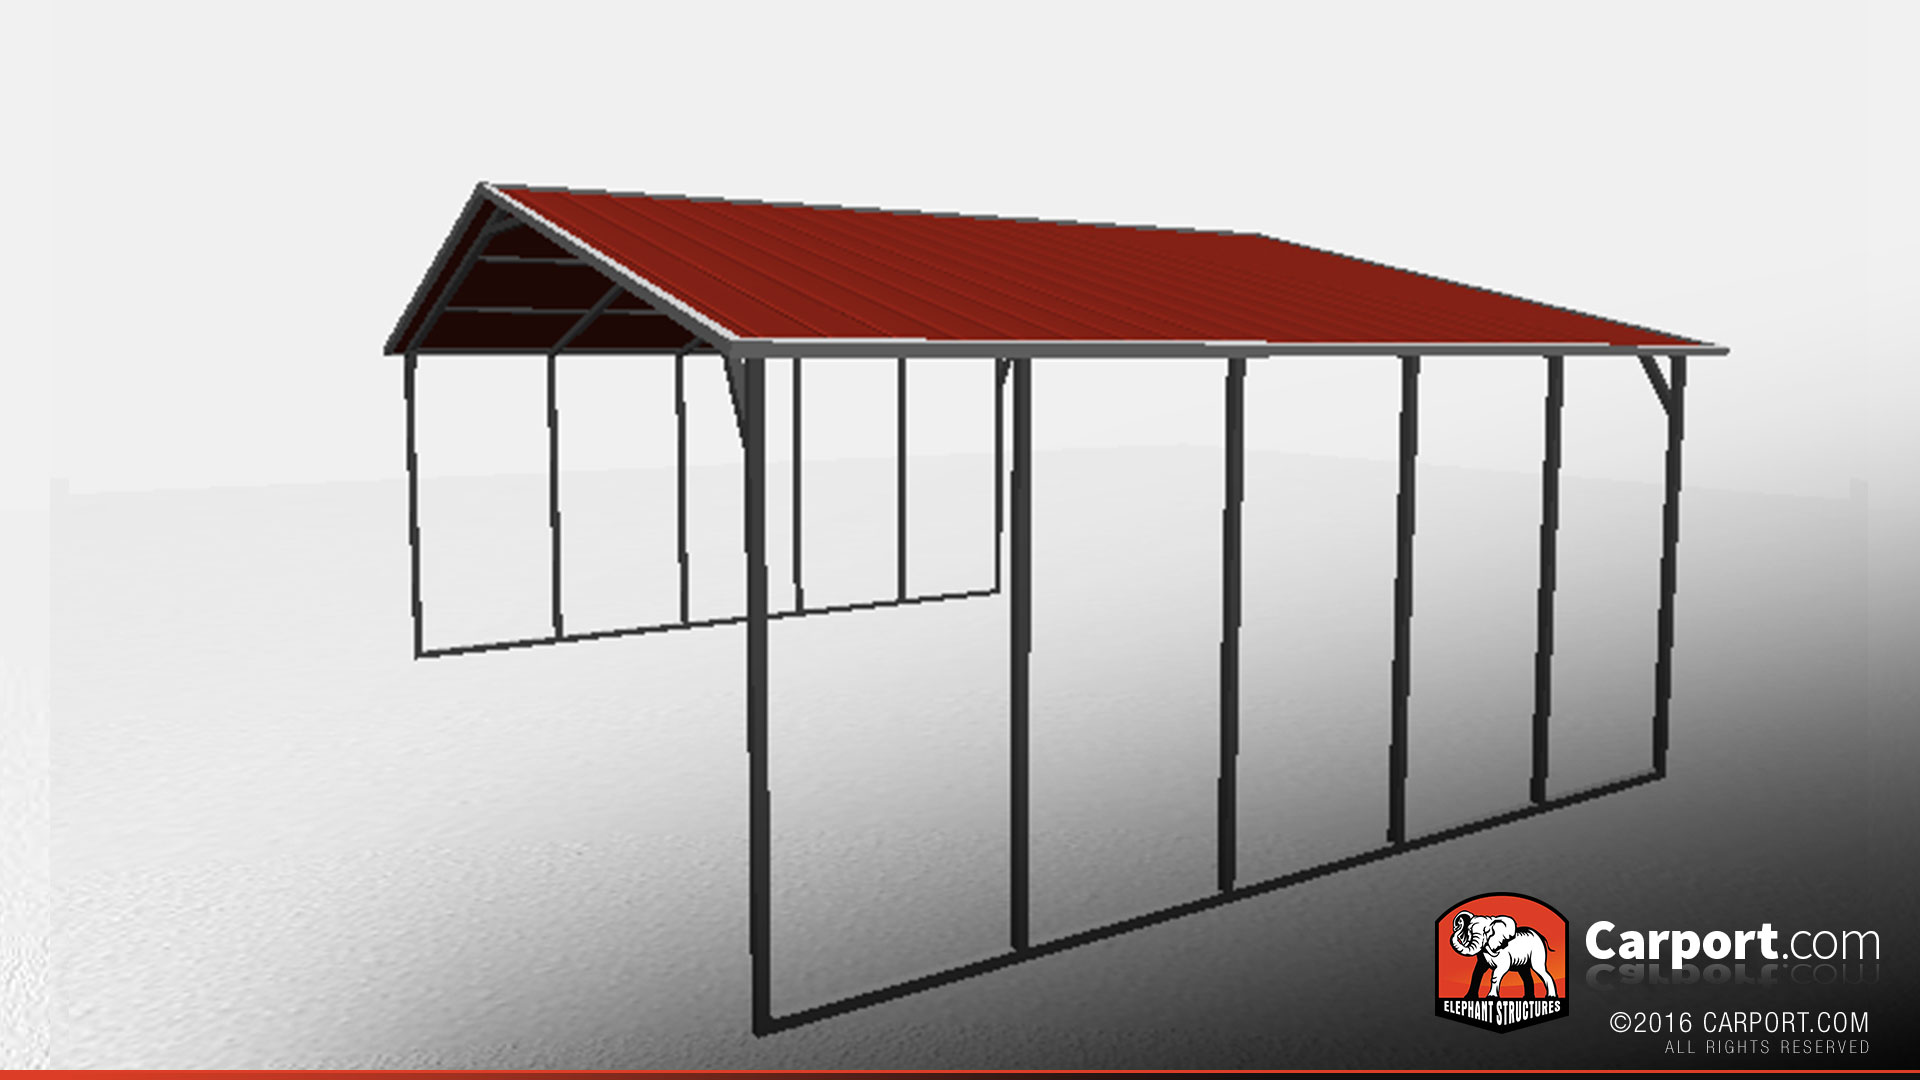 Metal garage carport buildings